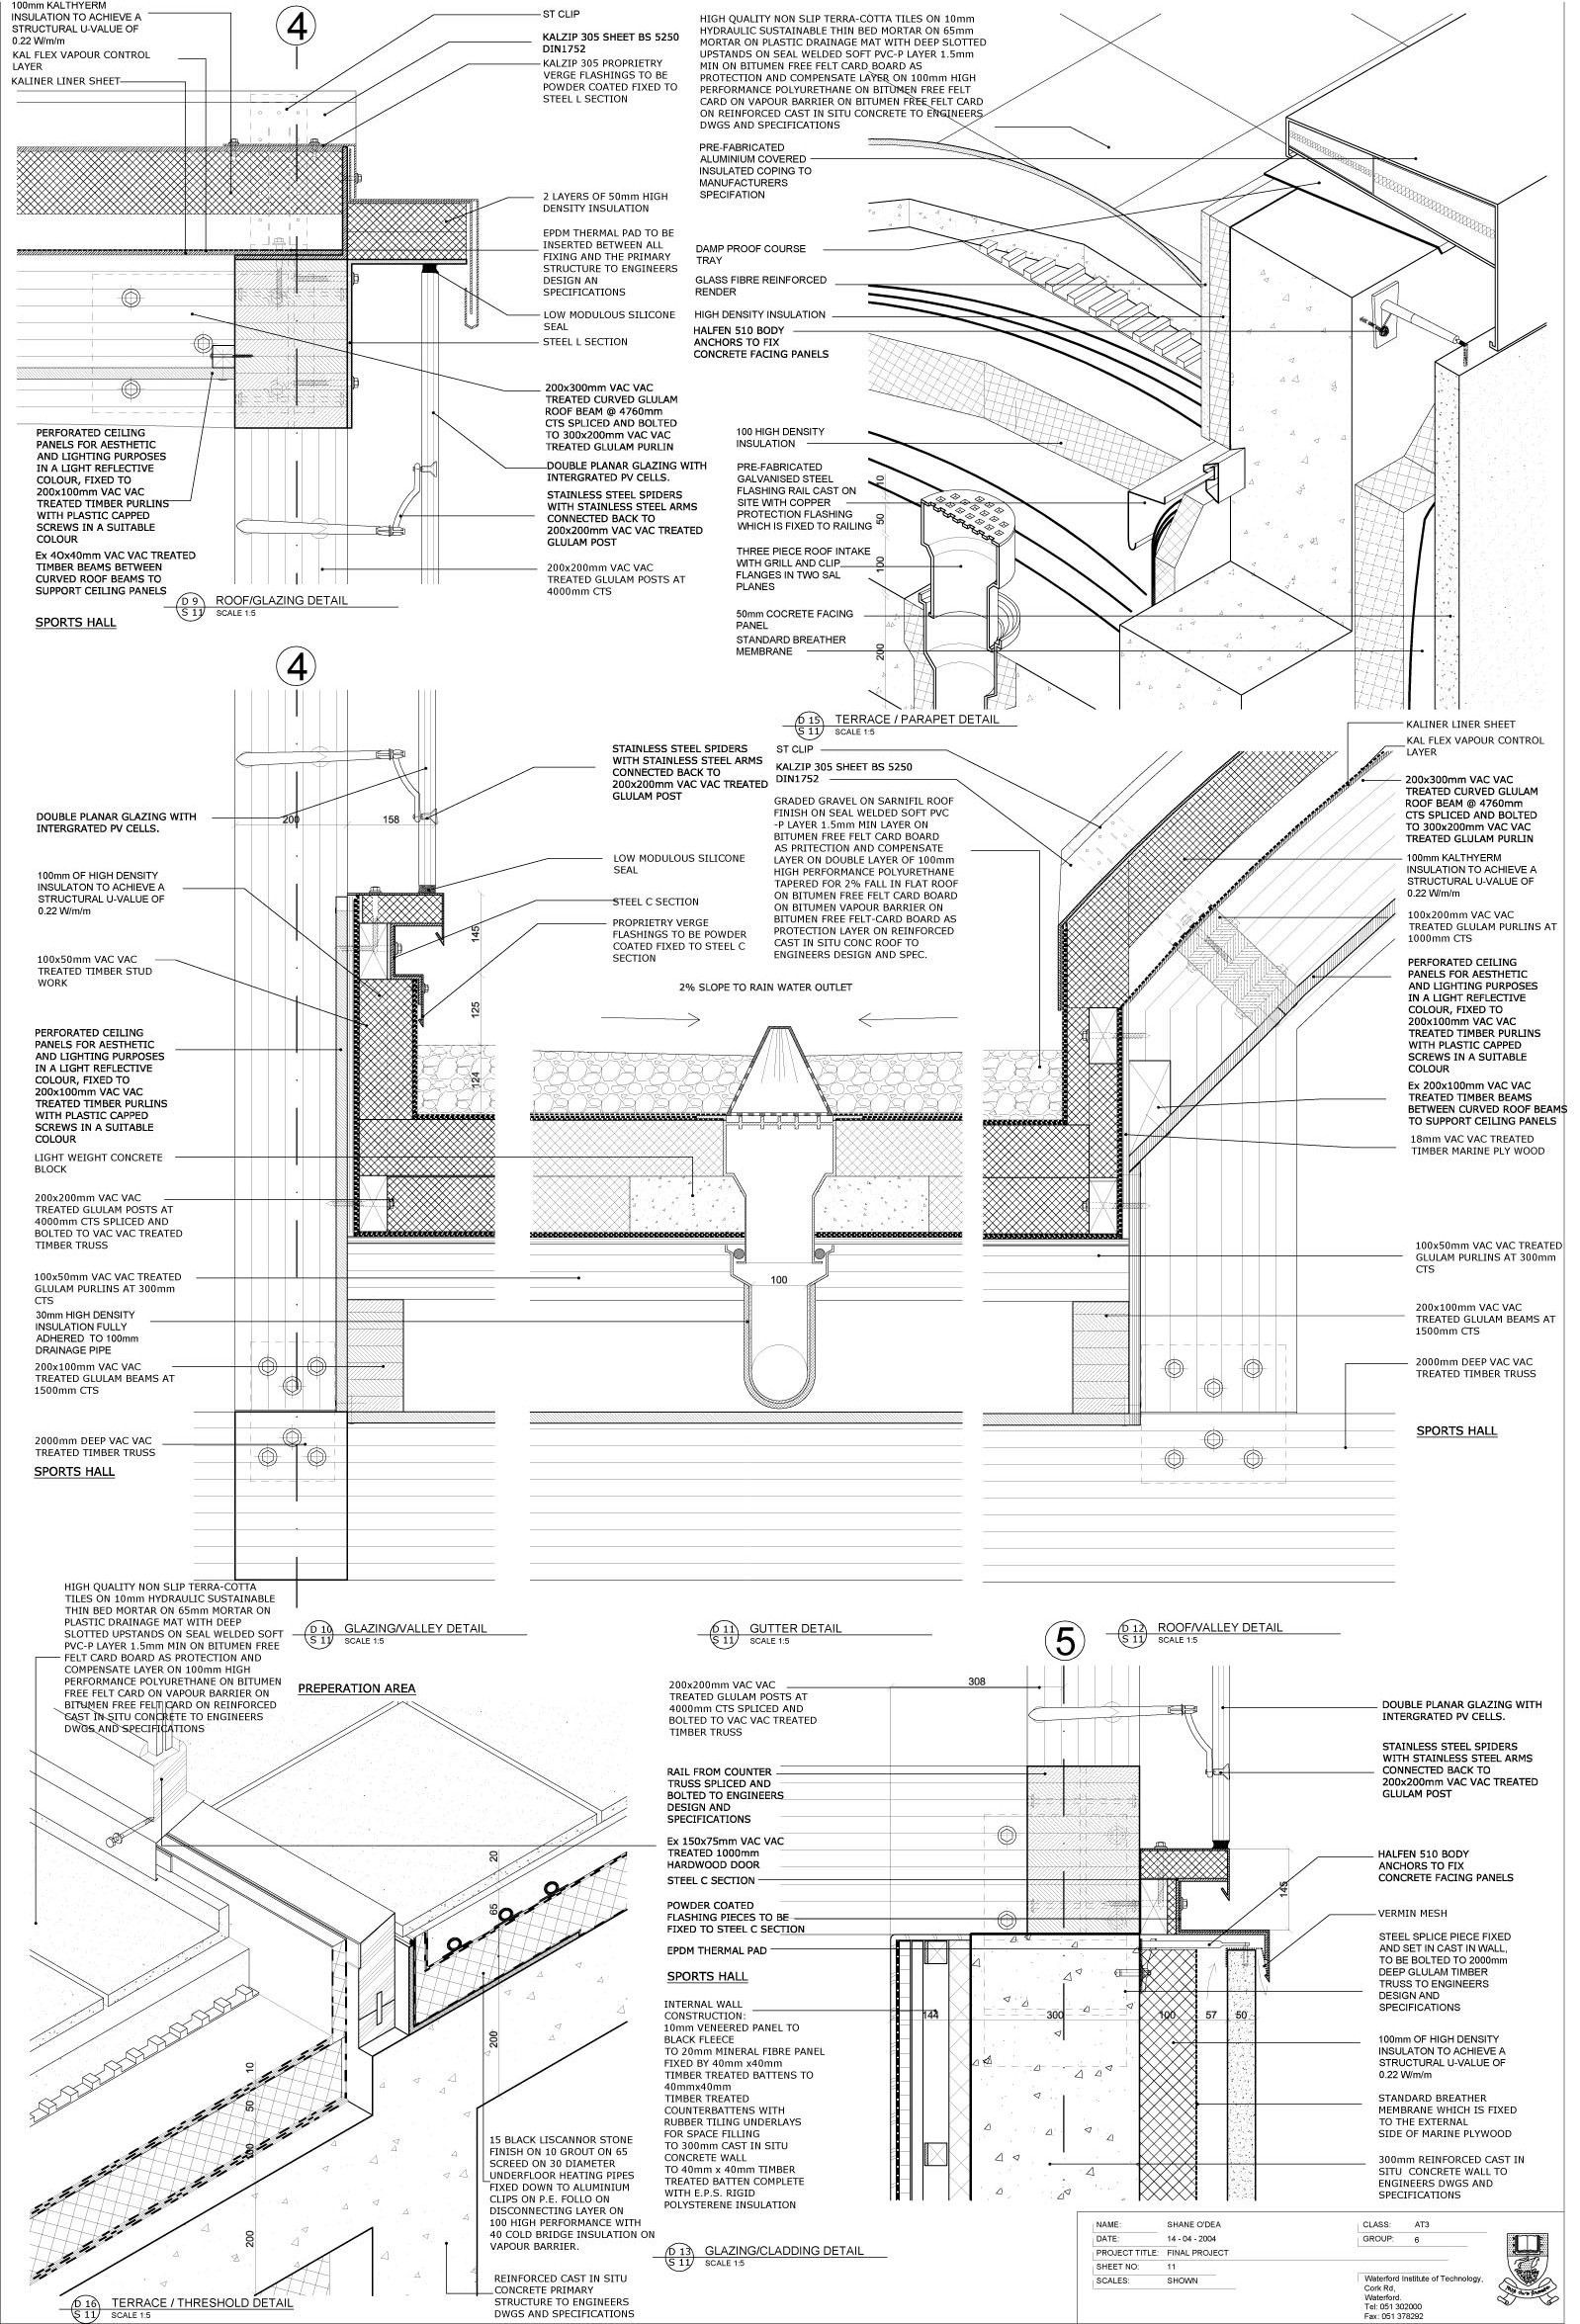 Fc5b32c4eeab042c6dd42938839b8715 Jpg 1 598 2 351 Pixels Architecture Details Architecture Drawing Building Design